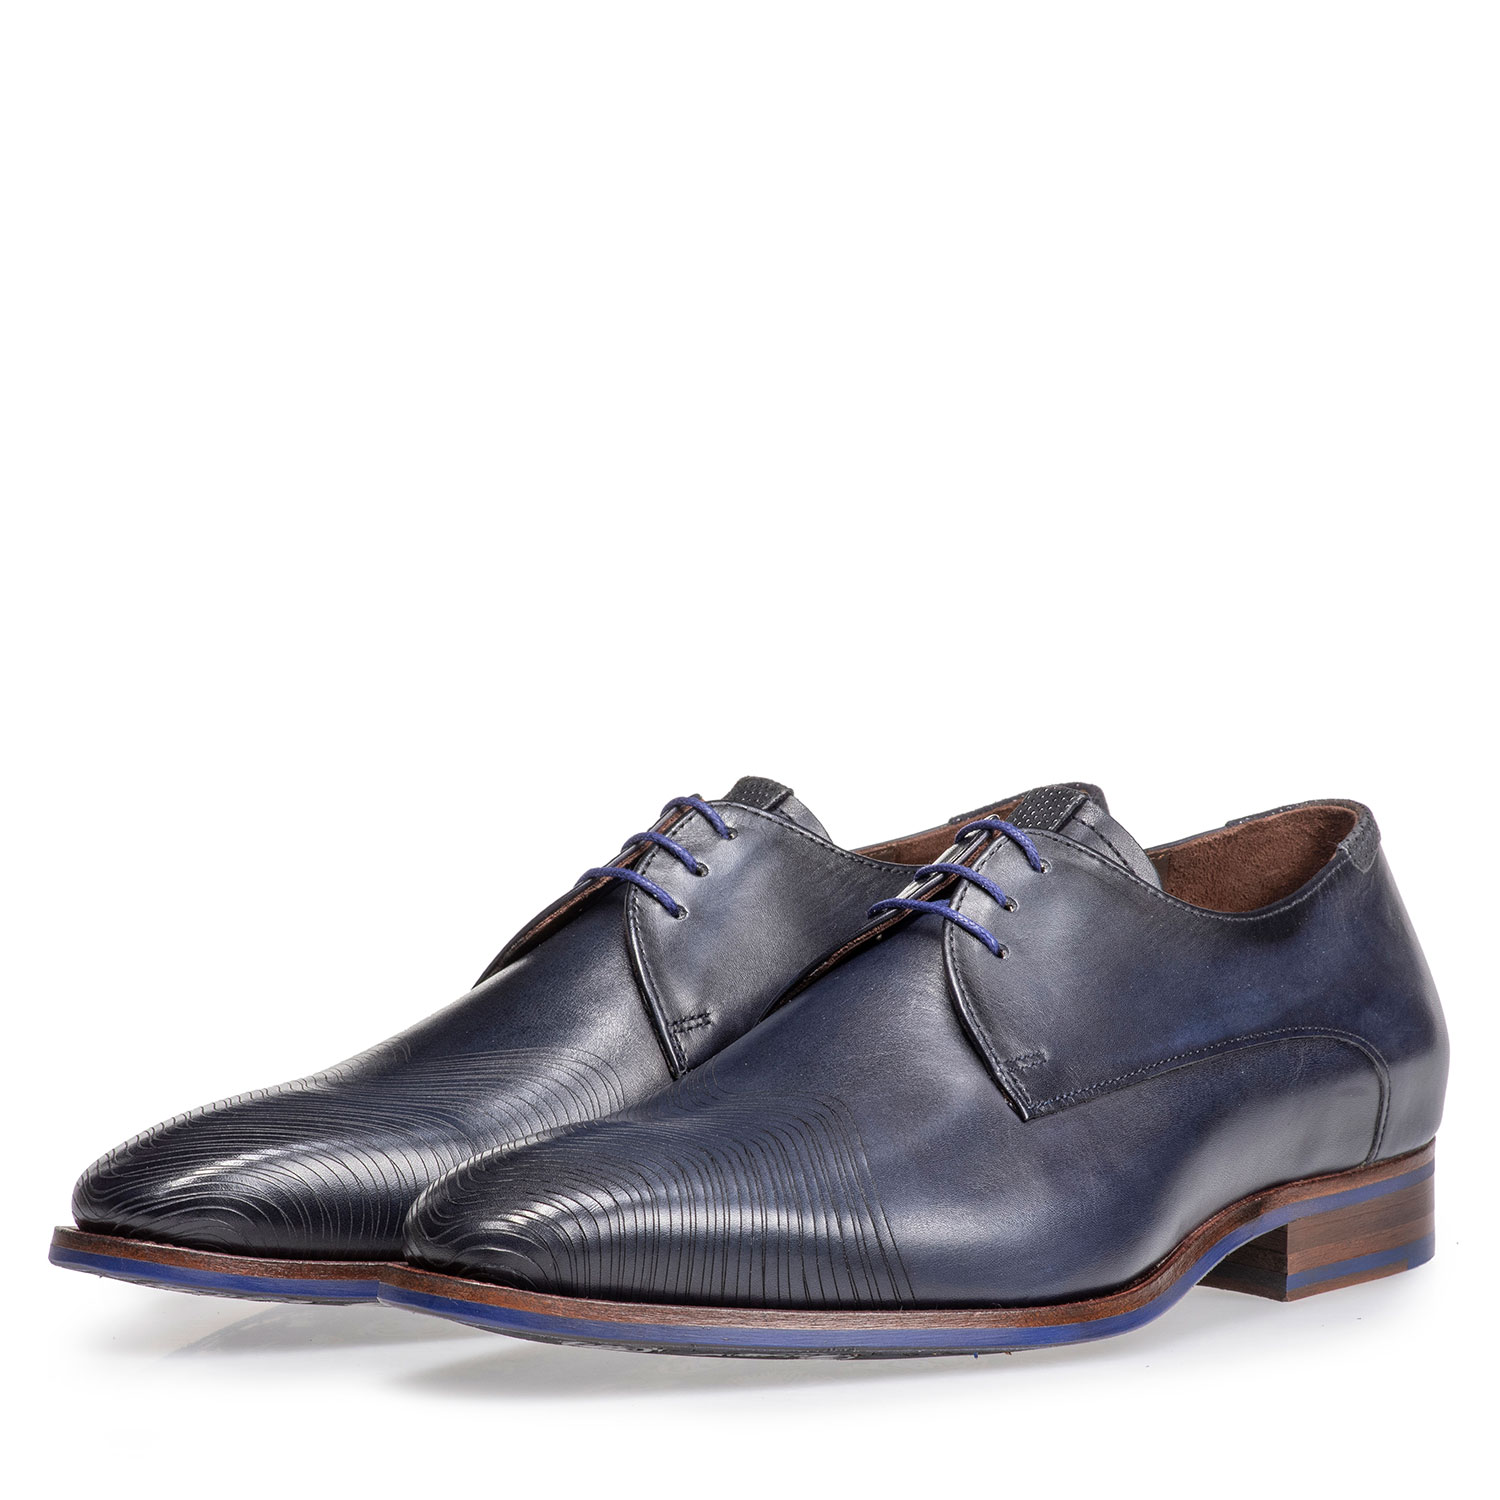 18288/01 - Dark blue leather lace shoe